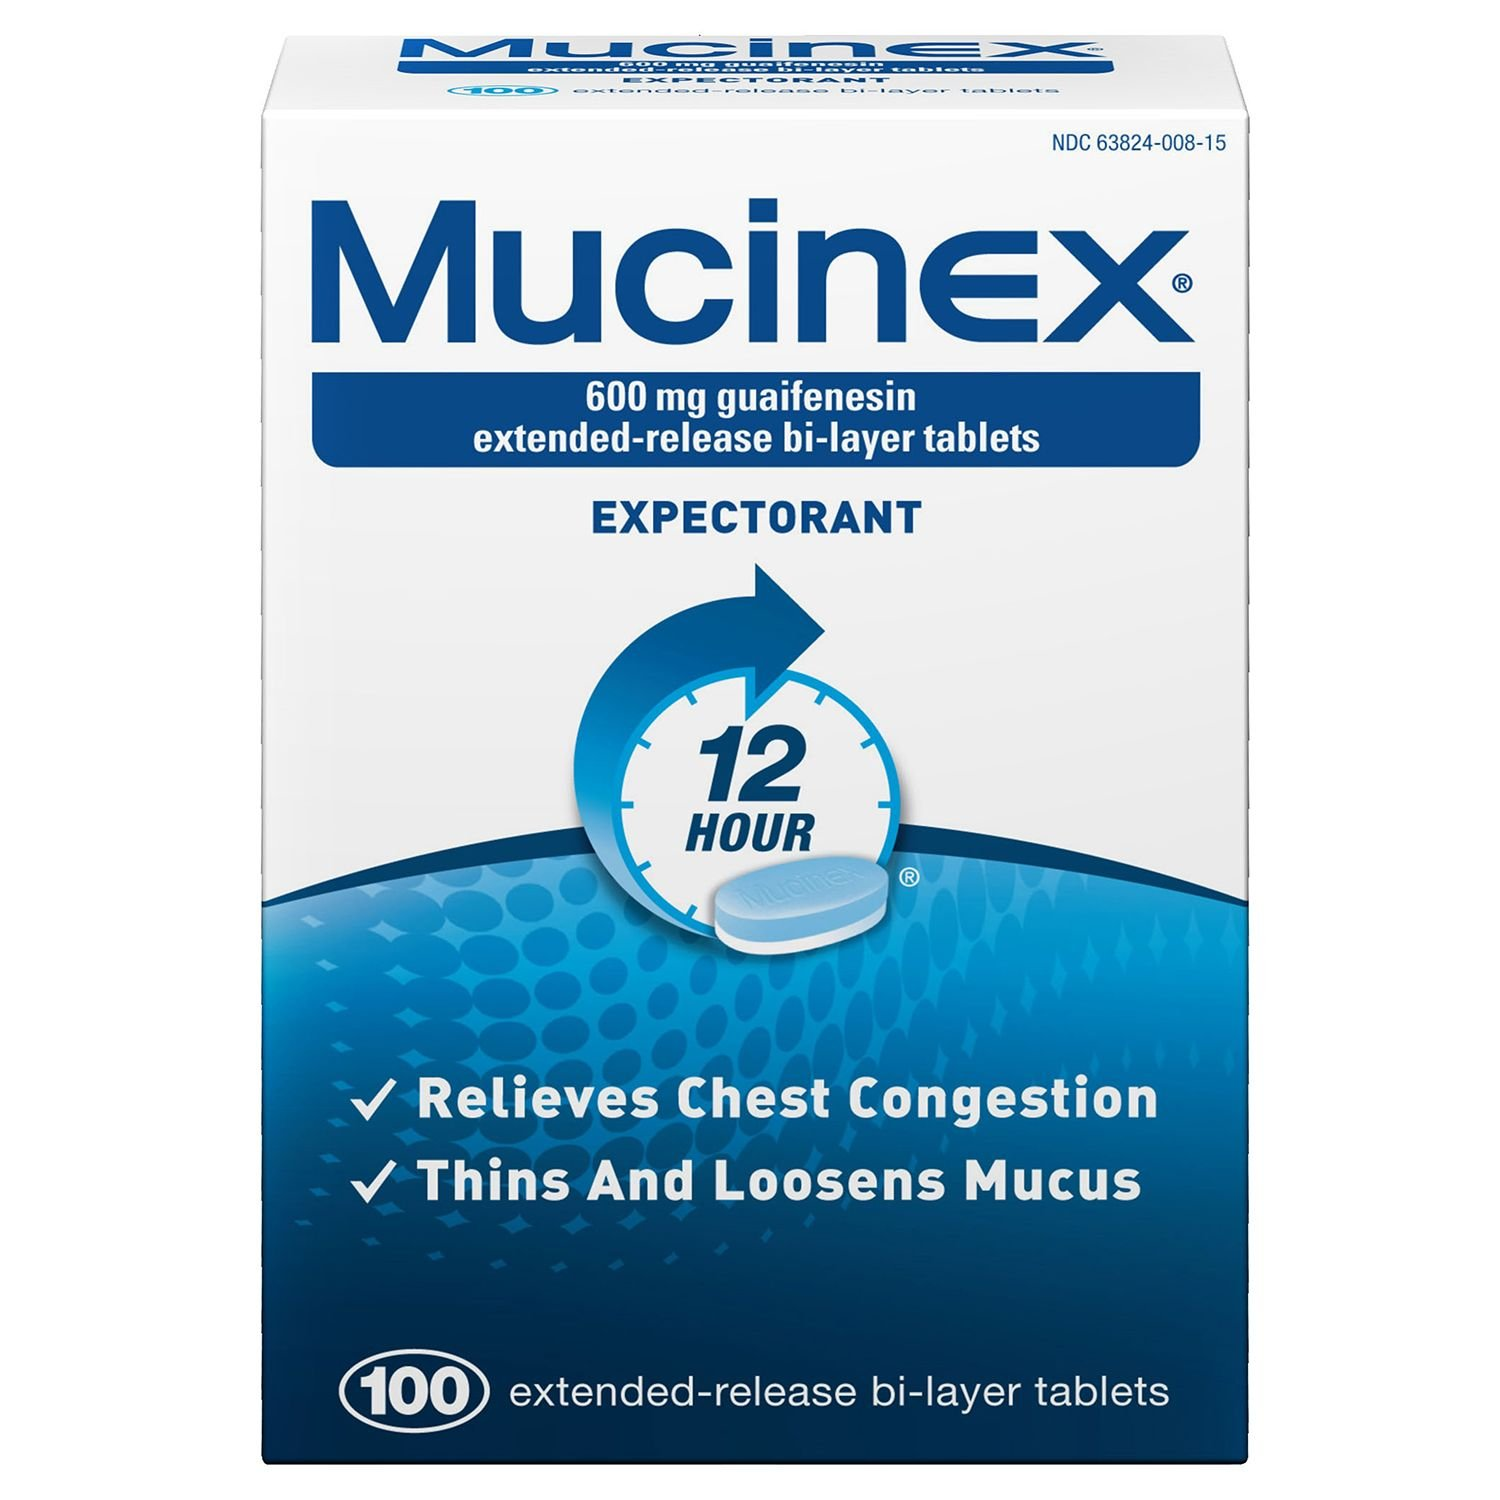 Mucinex Mucinex Extended-Release Bi-Layer, 100 tabs 600 mg(Pack of 2) by Mucinex